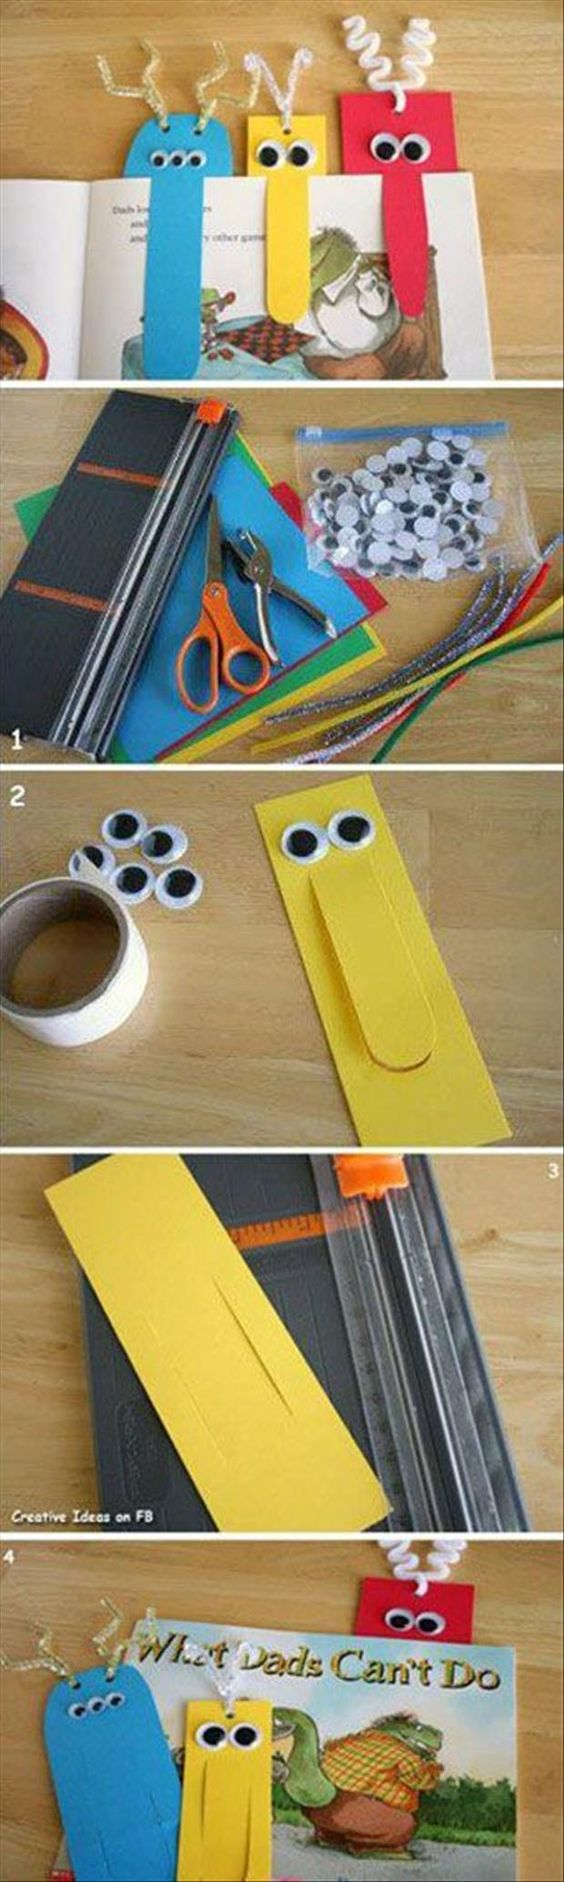 To make reading more fun for your children, you can make funny cardboard bookmarks for them. Paint some cardboards in different colors, cut the middle part, glue some googly eyes and tie some ribbo…